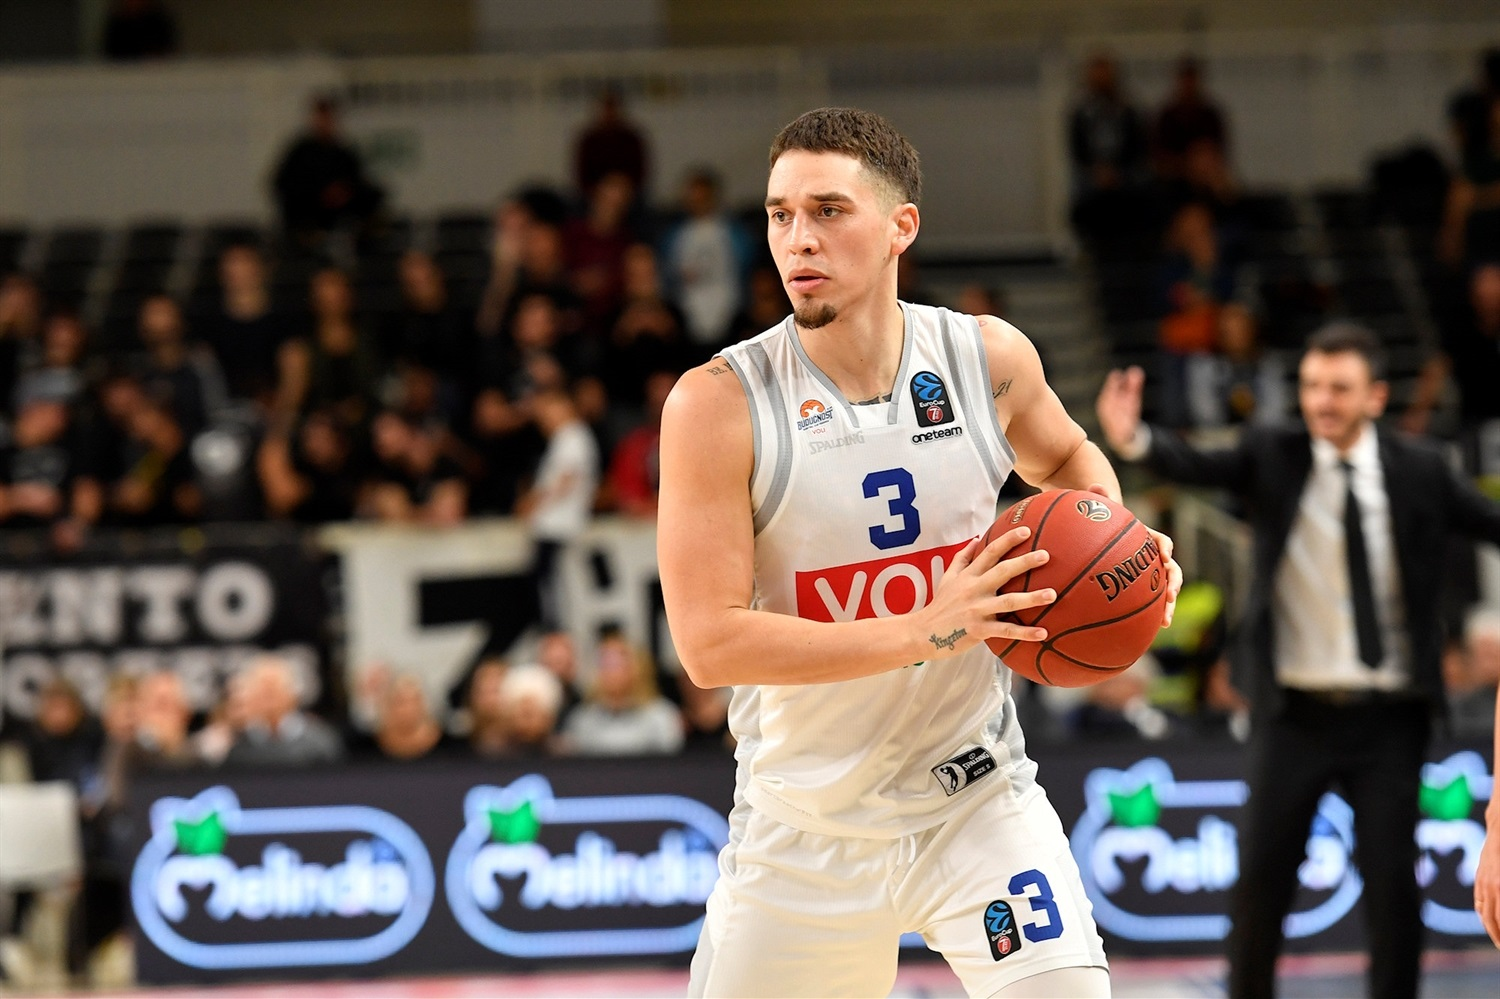 Scott Bamforth - Buducnost VOLI Podgorica (photo Trento) - EC19